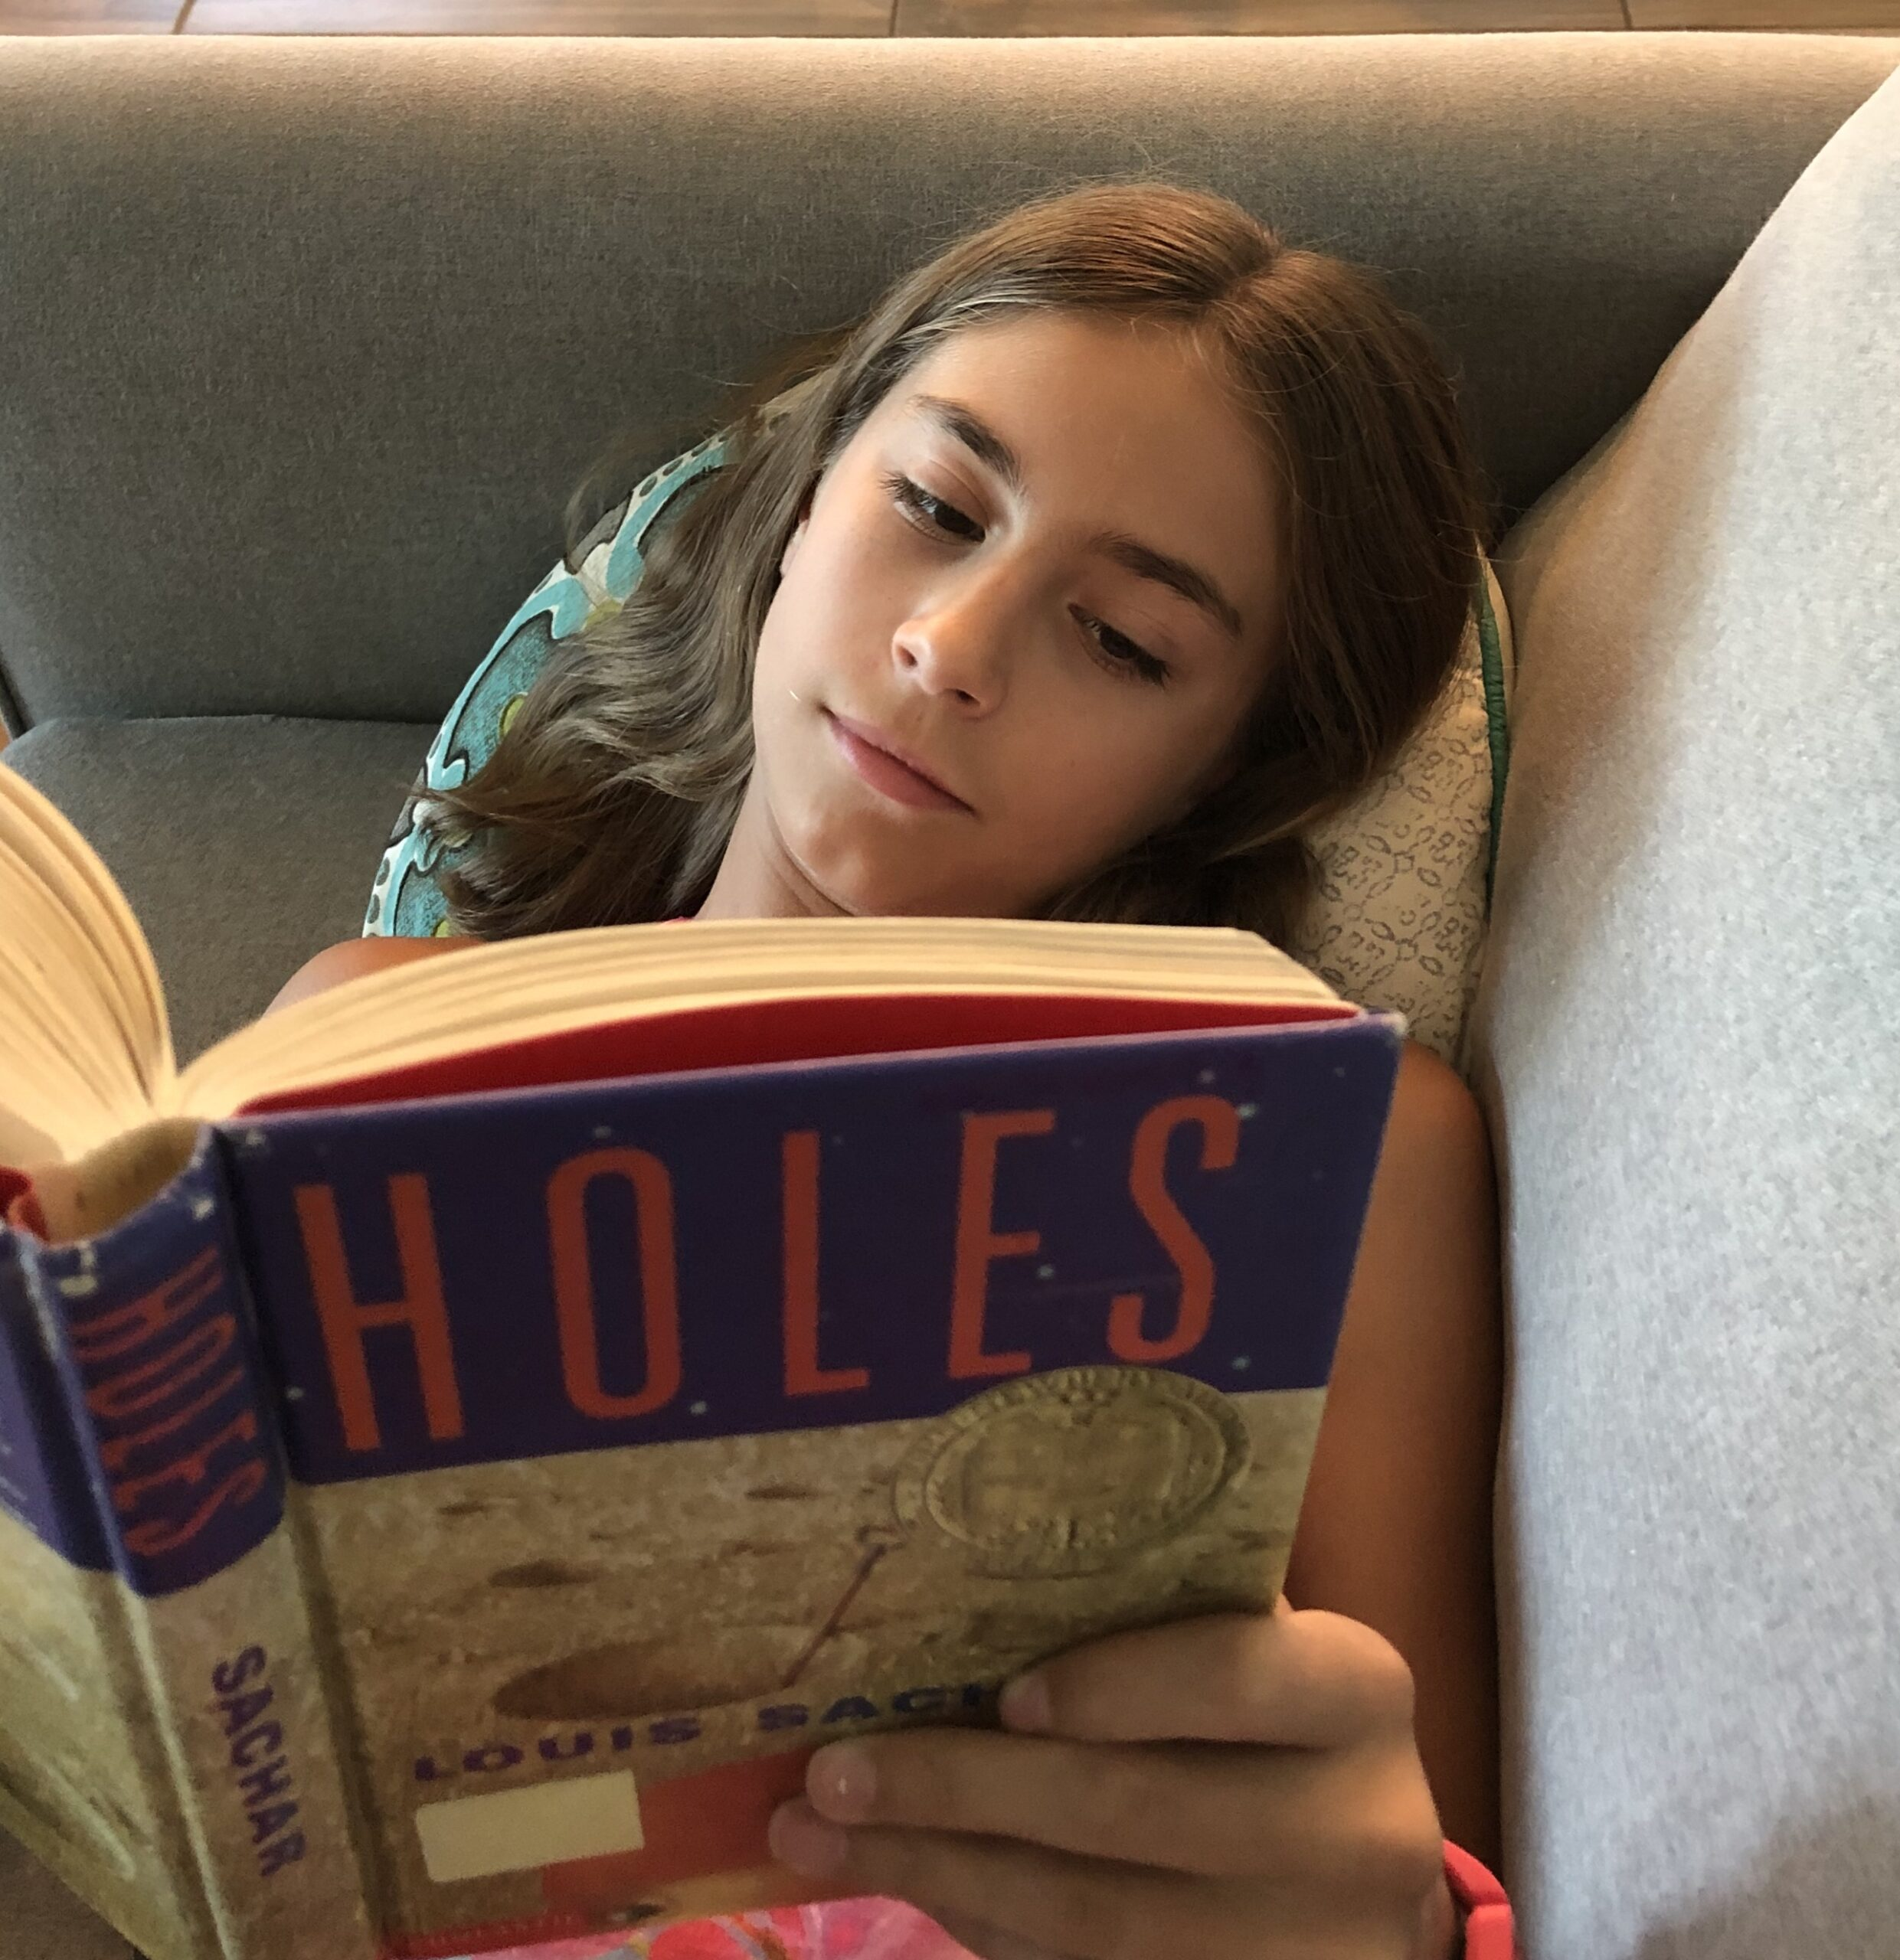 A girl laying on the couch reading Holes by Louis Sachar.